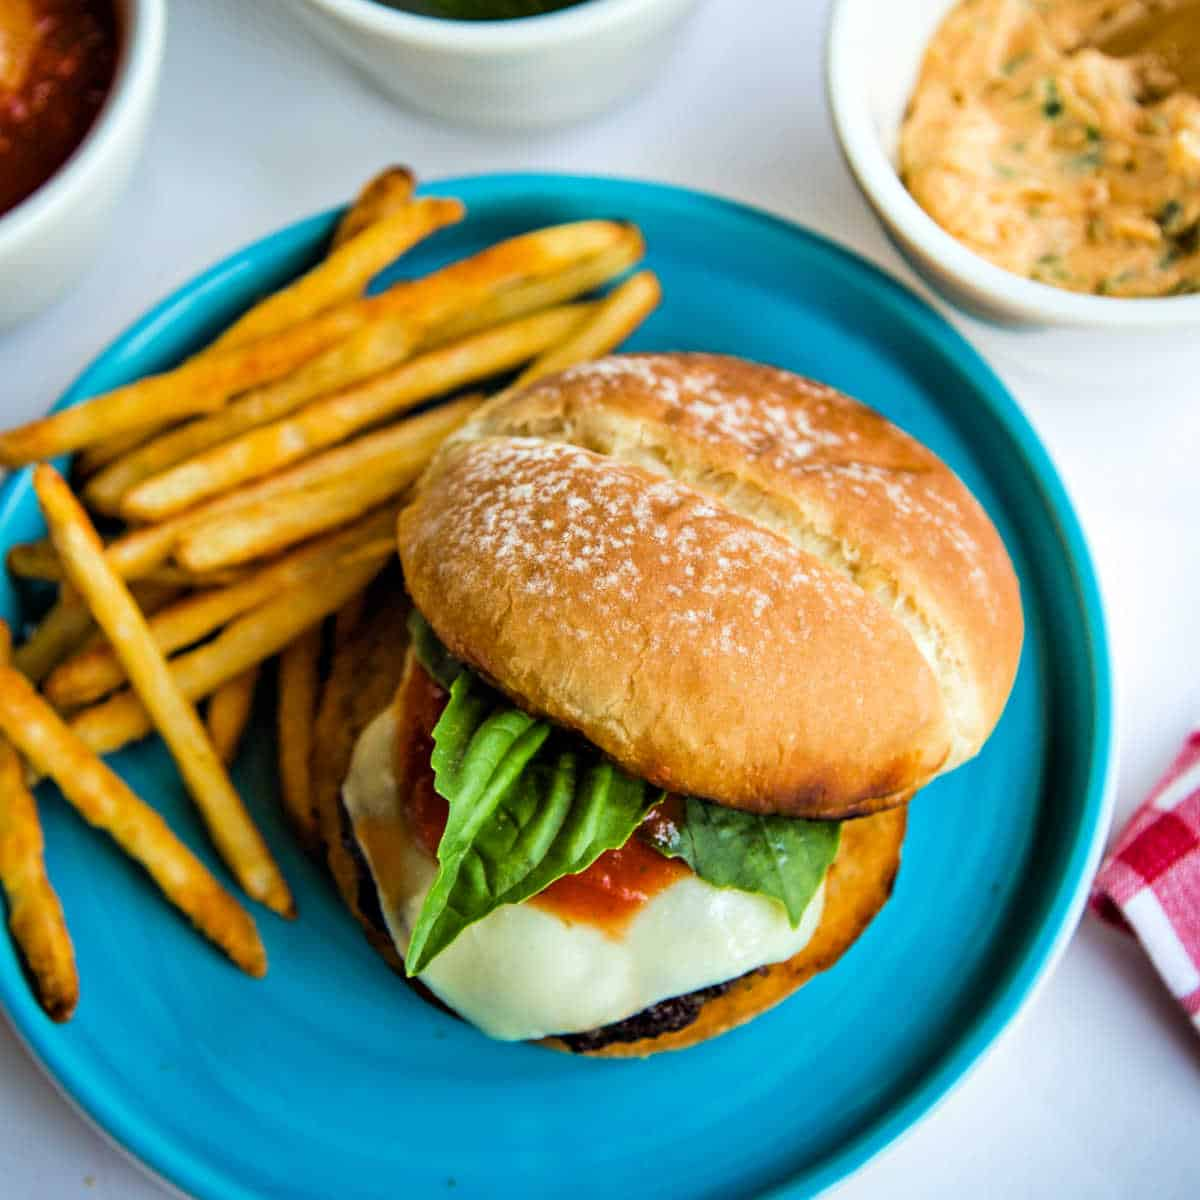 Italian Burgers with Fresh Basil & Roasted Garlic Butter on a blue plate with french fries